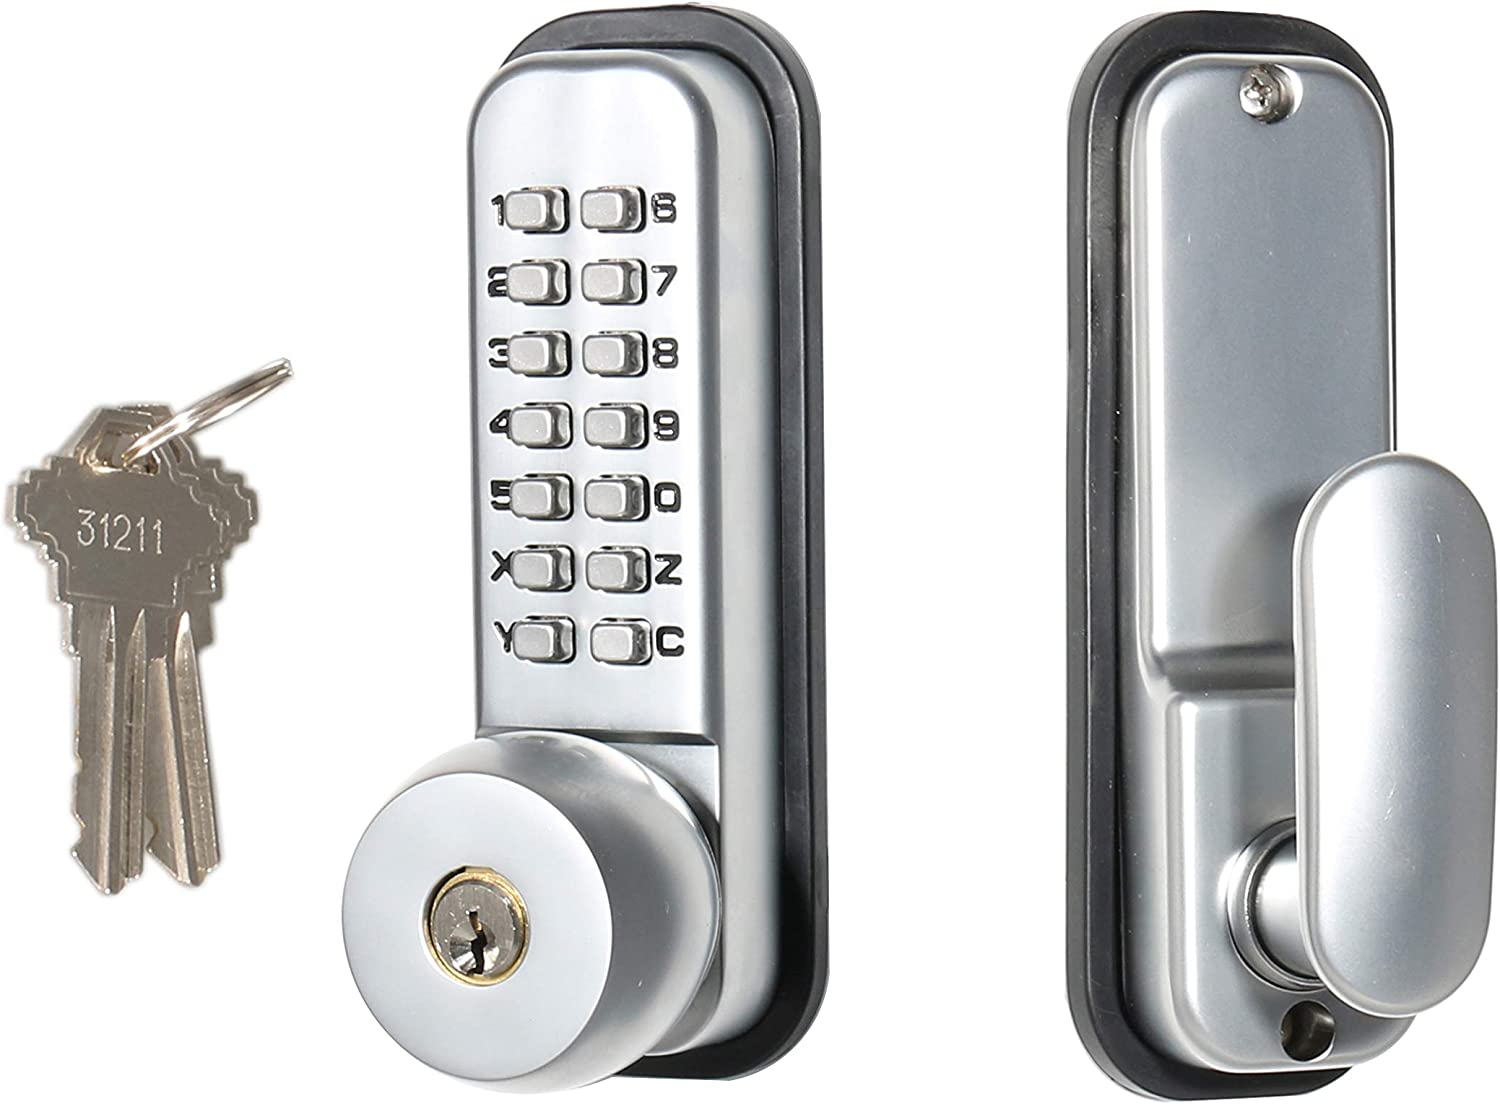 Airbnb Fits All Standard Doors Warehouse All-Weather Security for Doors Garage 14 Digit Combination Storage Shed Gates MUTEX MX370 Mechanical Keyless and//or Keyed Entry Lock Set